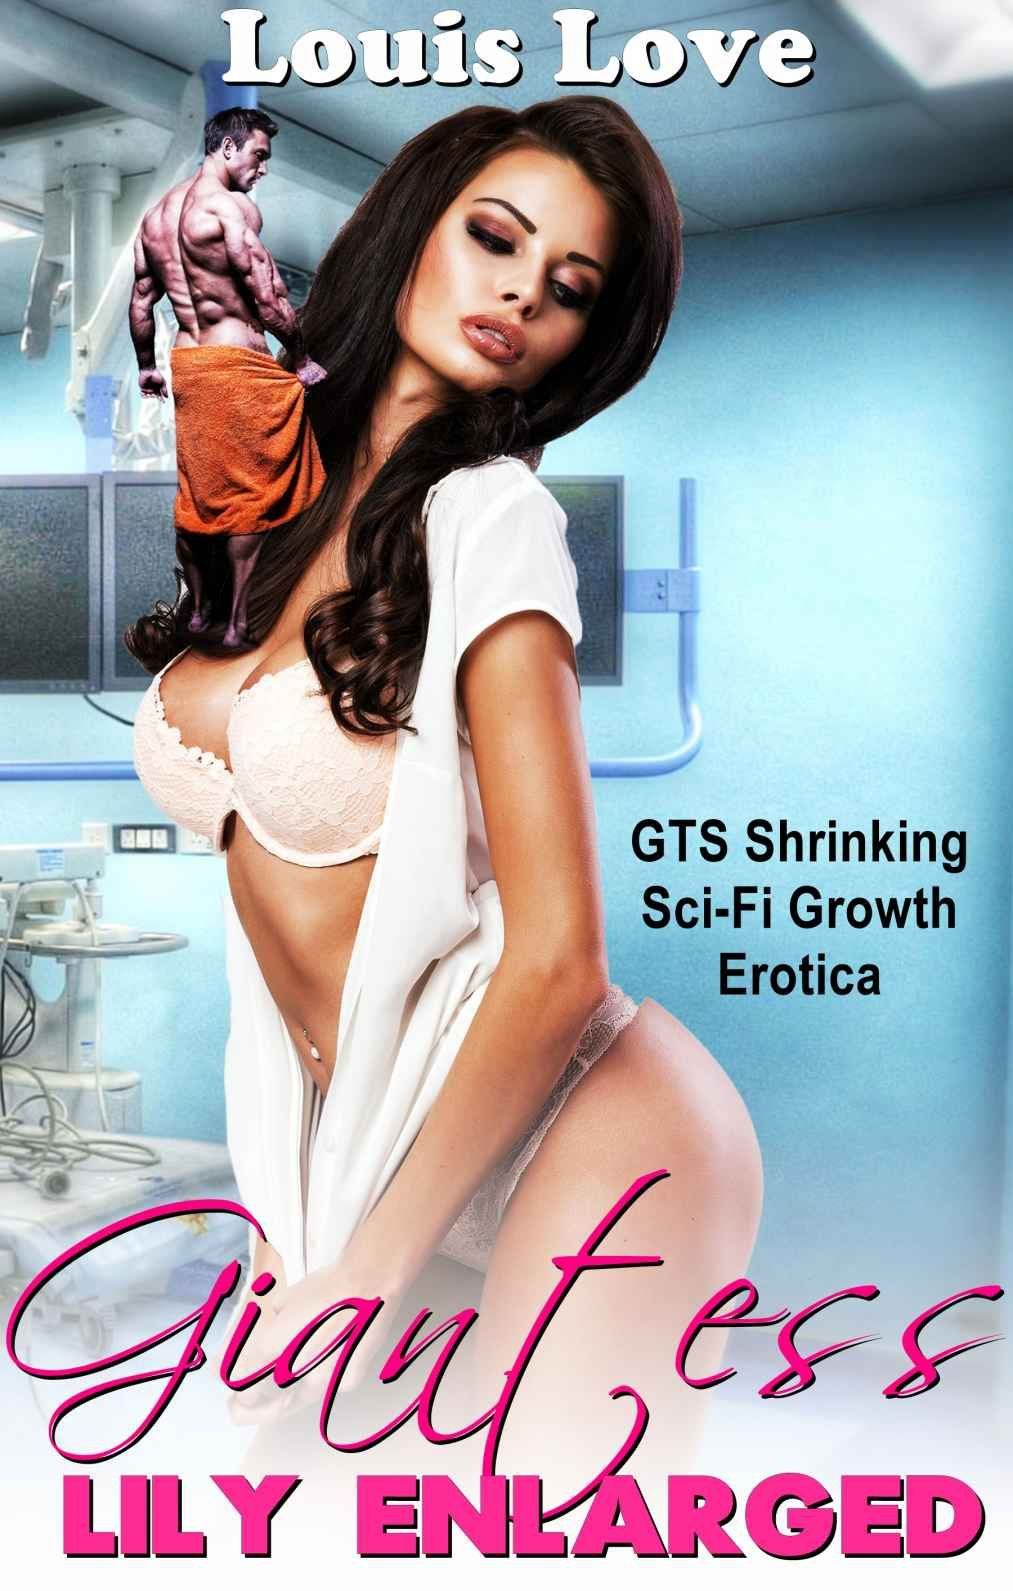 Gts fetish shrinking